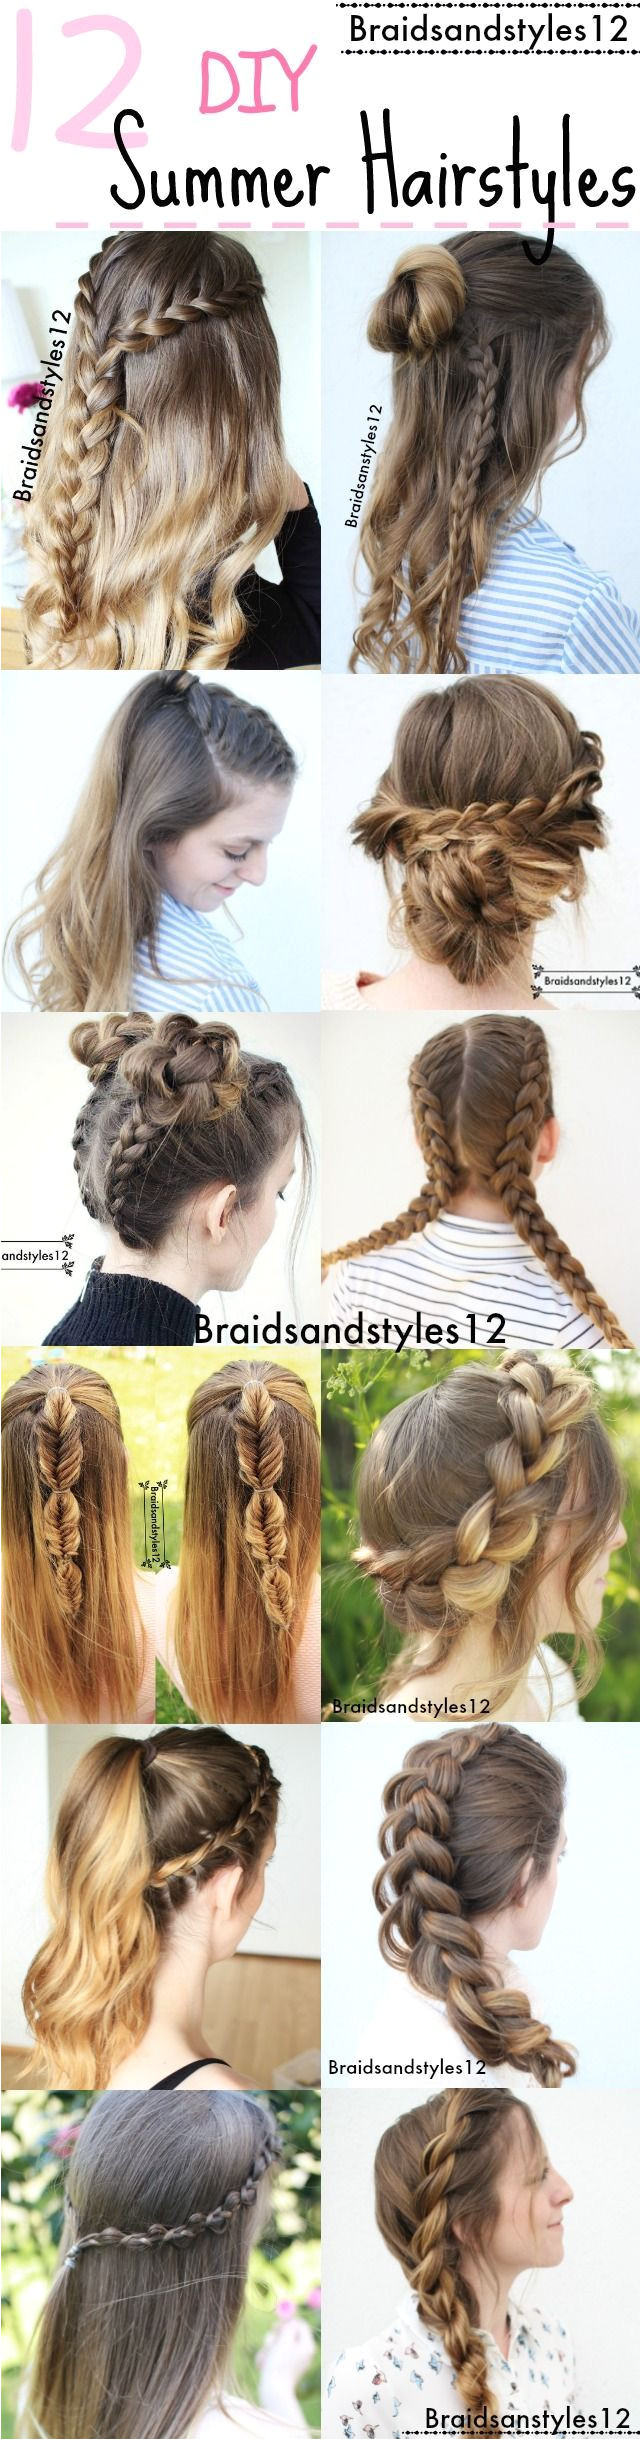 12 Gorgeous DIY Summer Hairstyle Ideas by Braidsanstyles12 Beachy Hairstyles by Braidsandstyles12 beautyhairstyles · Fast HairstylesSchool